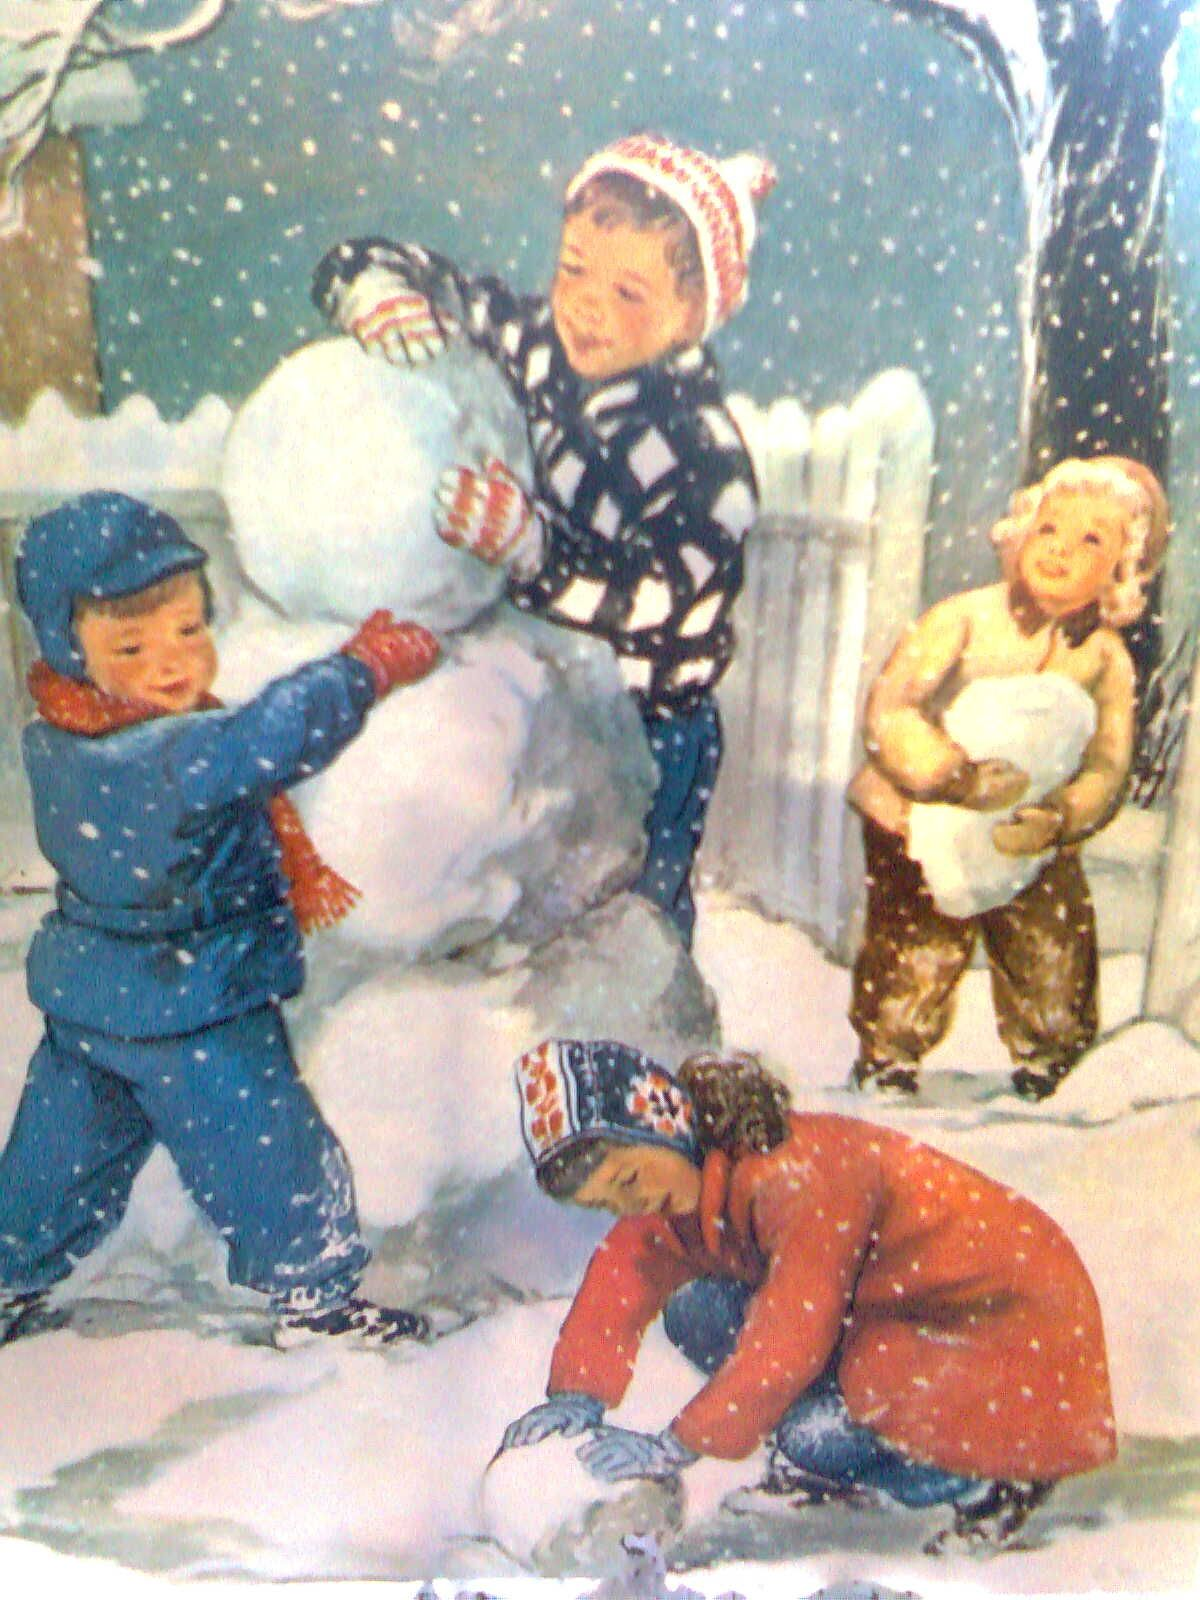 old print of yesteryear snow play. love it.